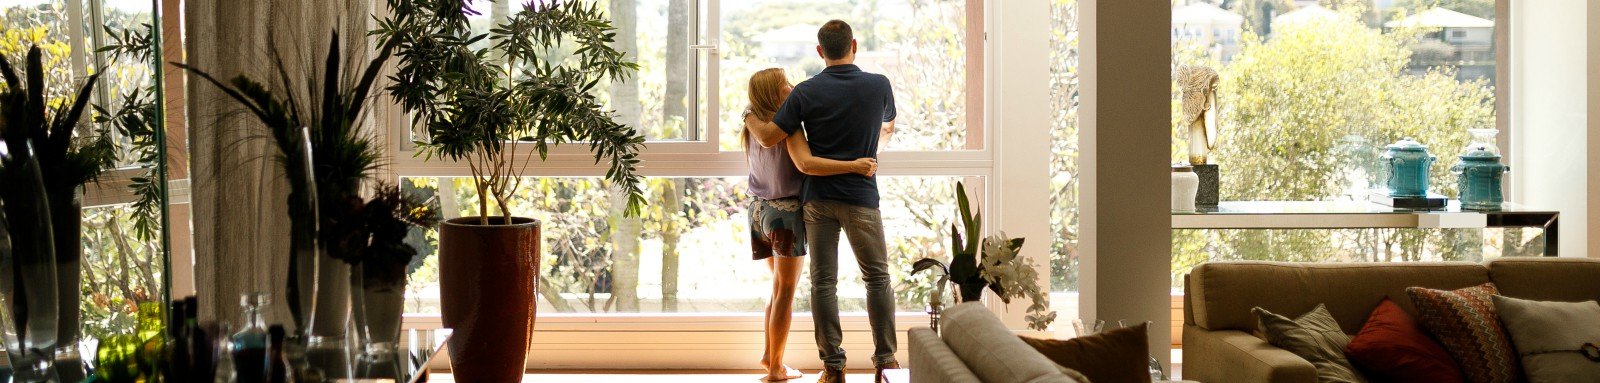 Couple looking outside living room window